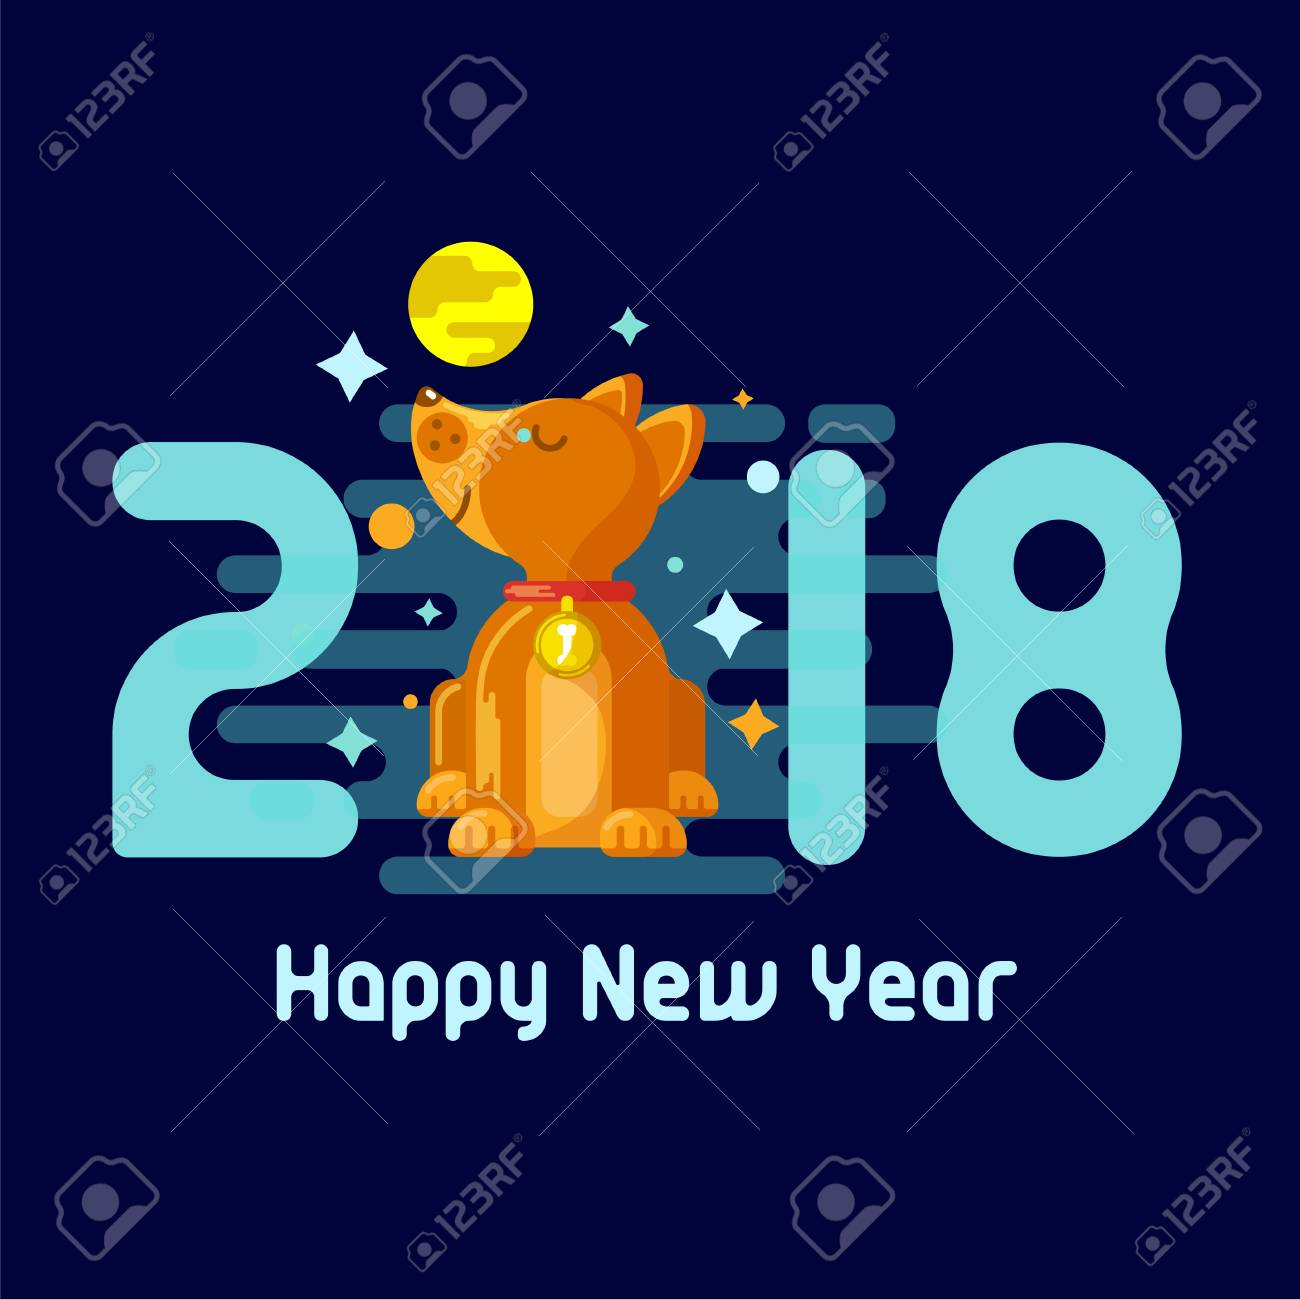 design of the new years greeting card 2018 year of the dog in the style of